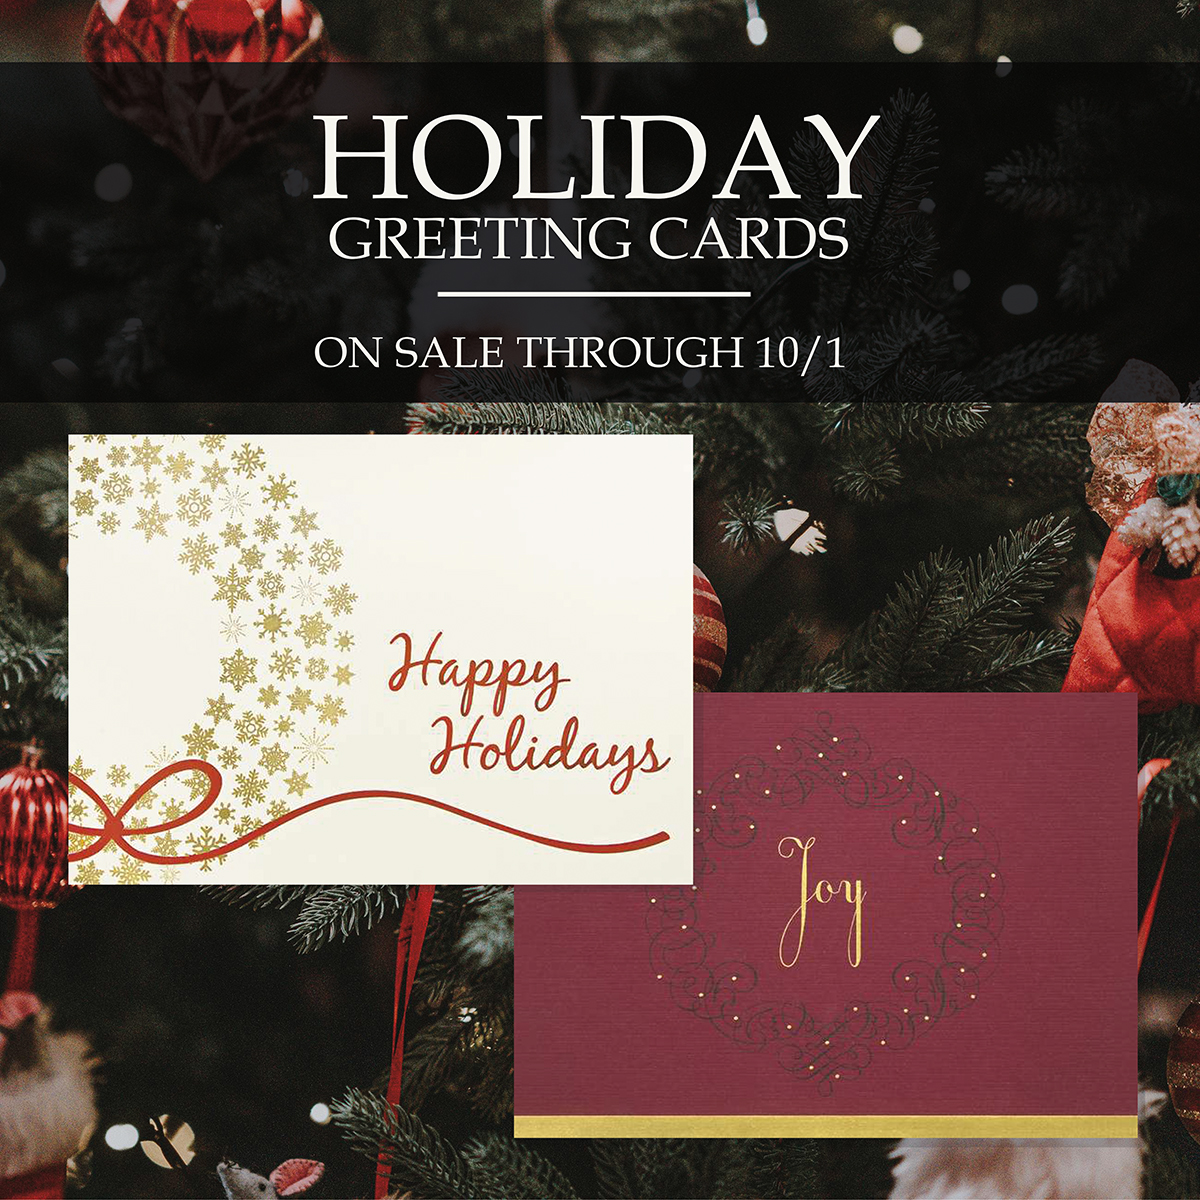 Business holiday cards on sale | Warwick Publishing